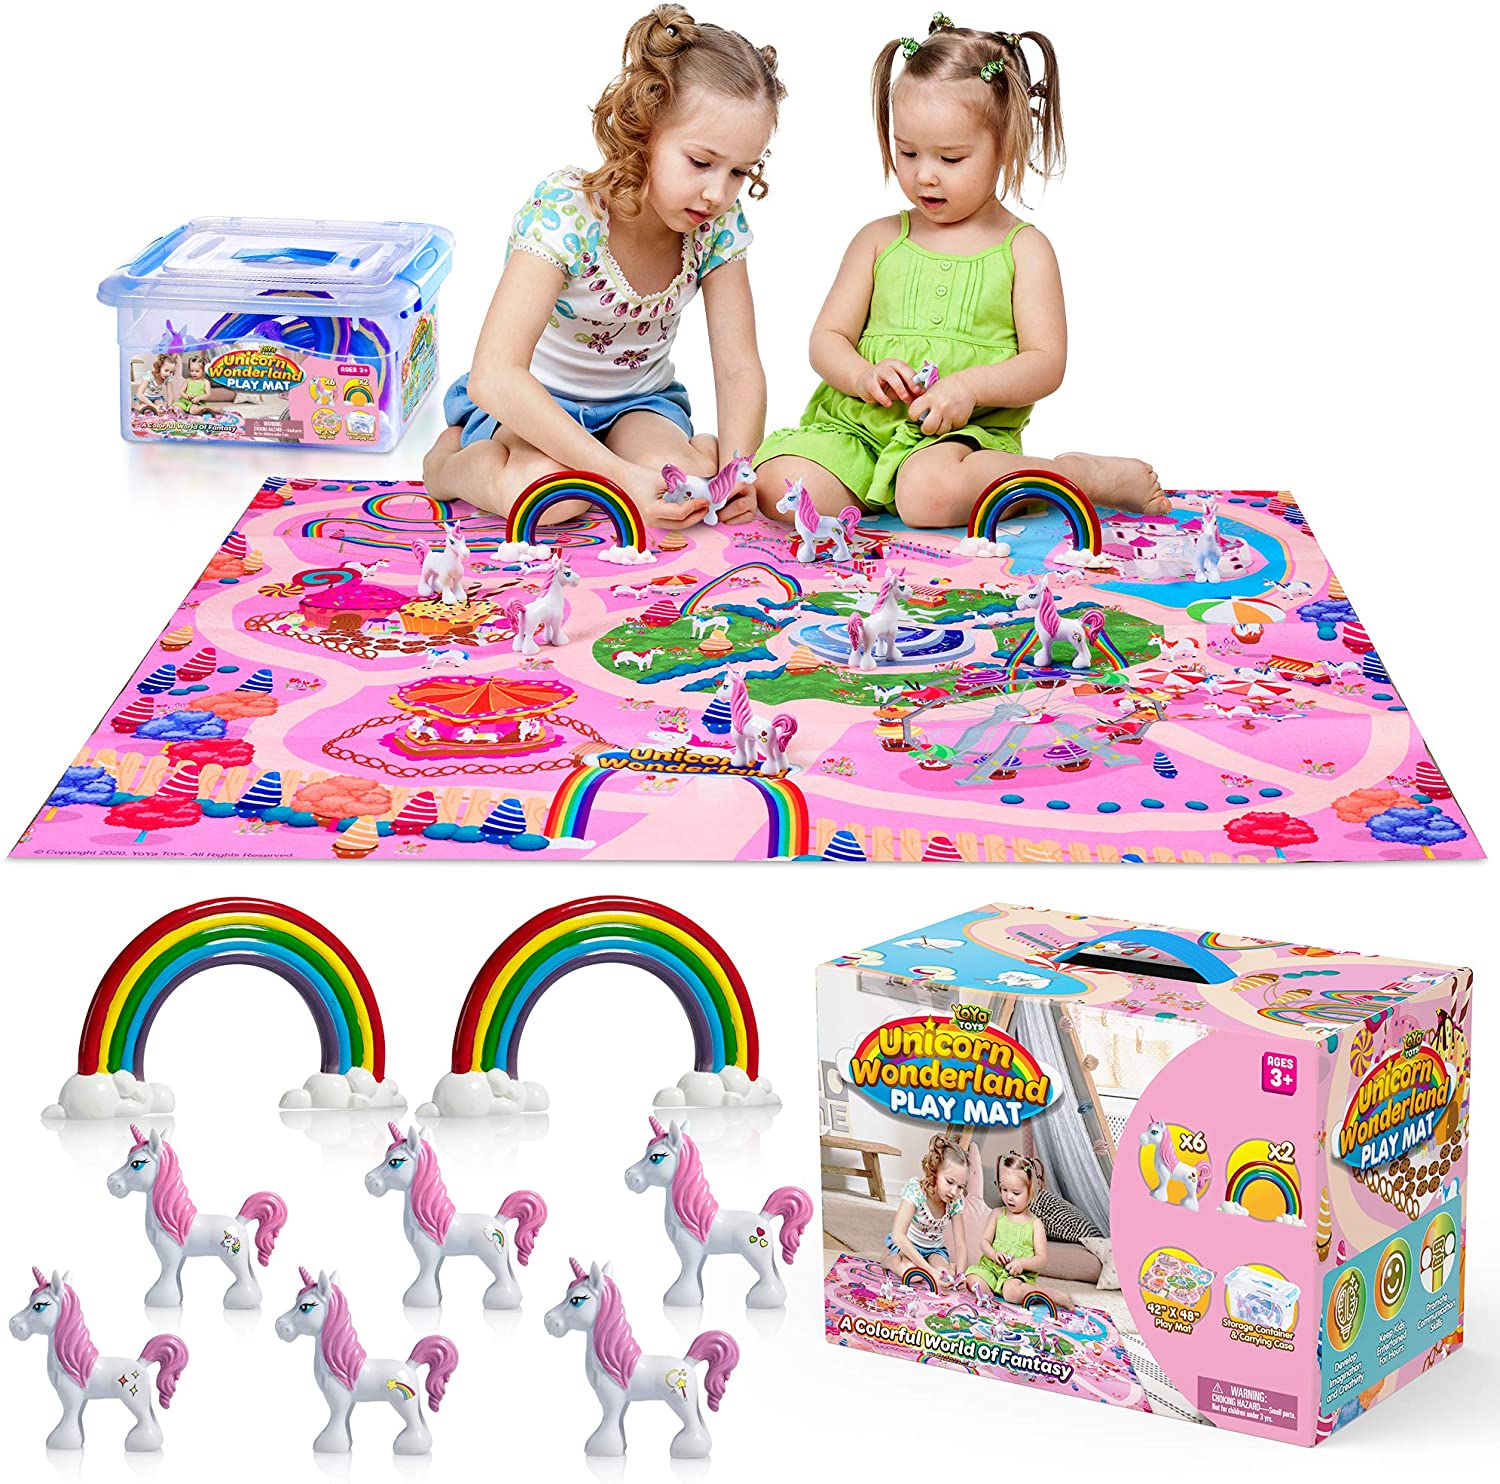 YoYa Toys Unicorn Wonderland Play Mat & Unicorn Toy Set   Colorful Activity Playmat & (6) Unicorn Figurine Set Keeps Little Girls Entertained for Hours   Adorable Playset Makes a Great Gift for Girls